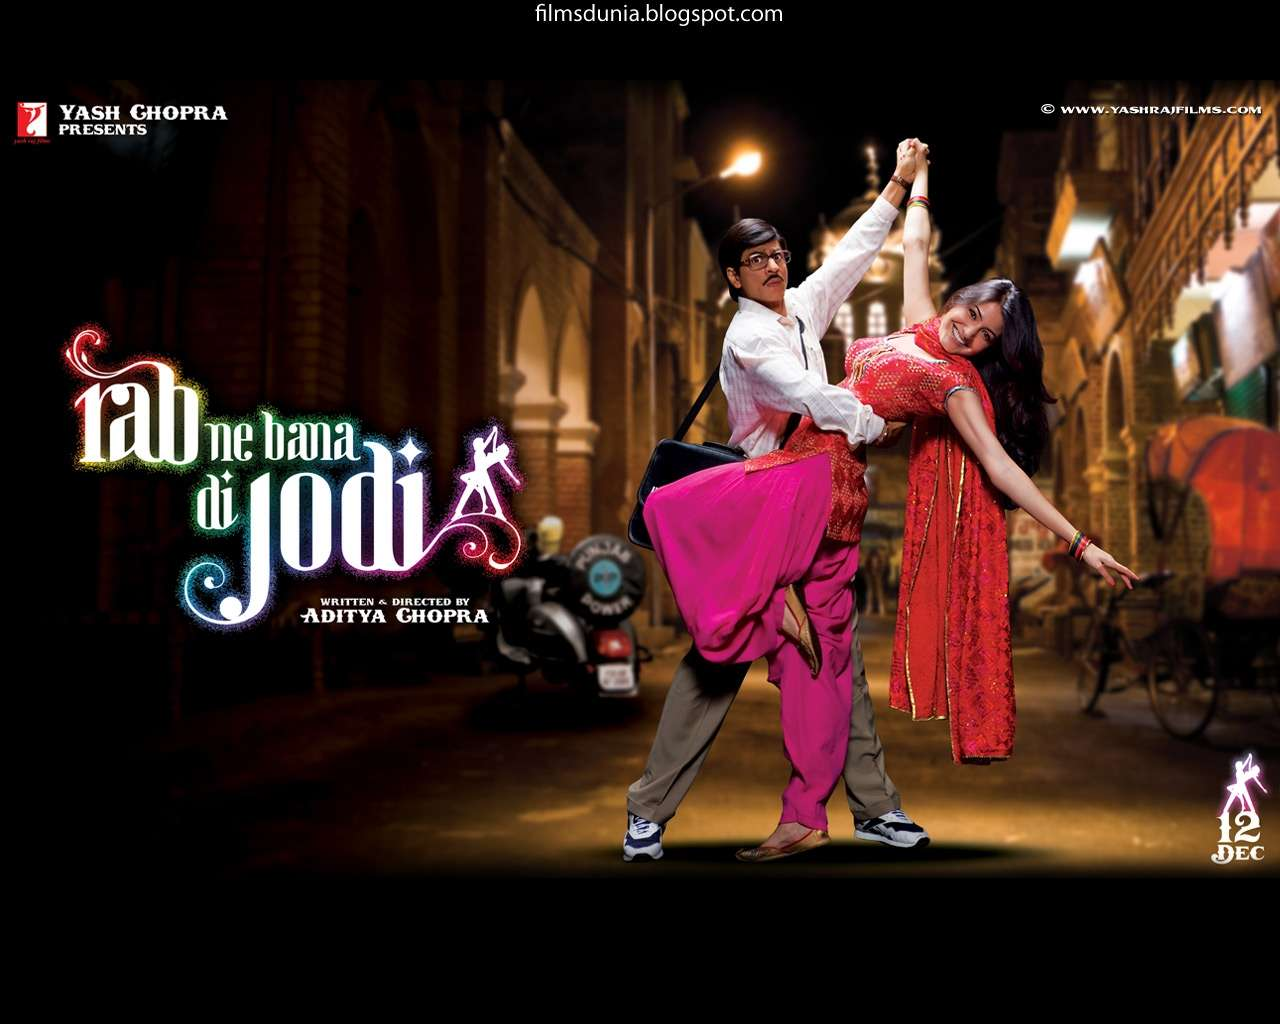 Wallpaper Love Jodi : Rab Ne Bana Di Jodi Wallpaper : Hd Wallpapers